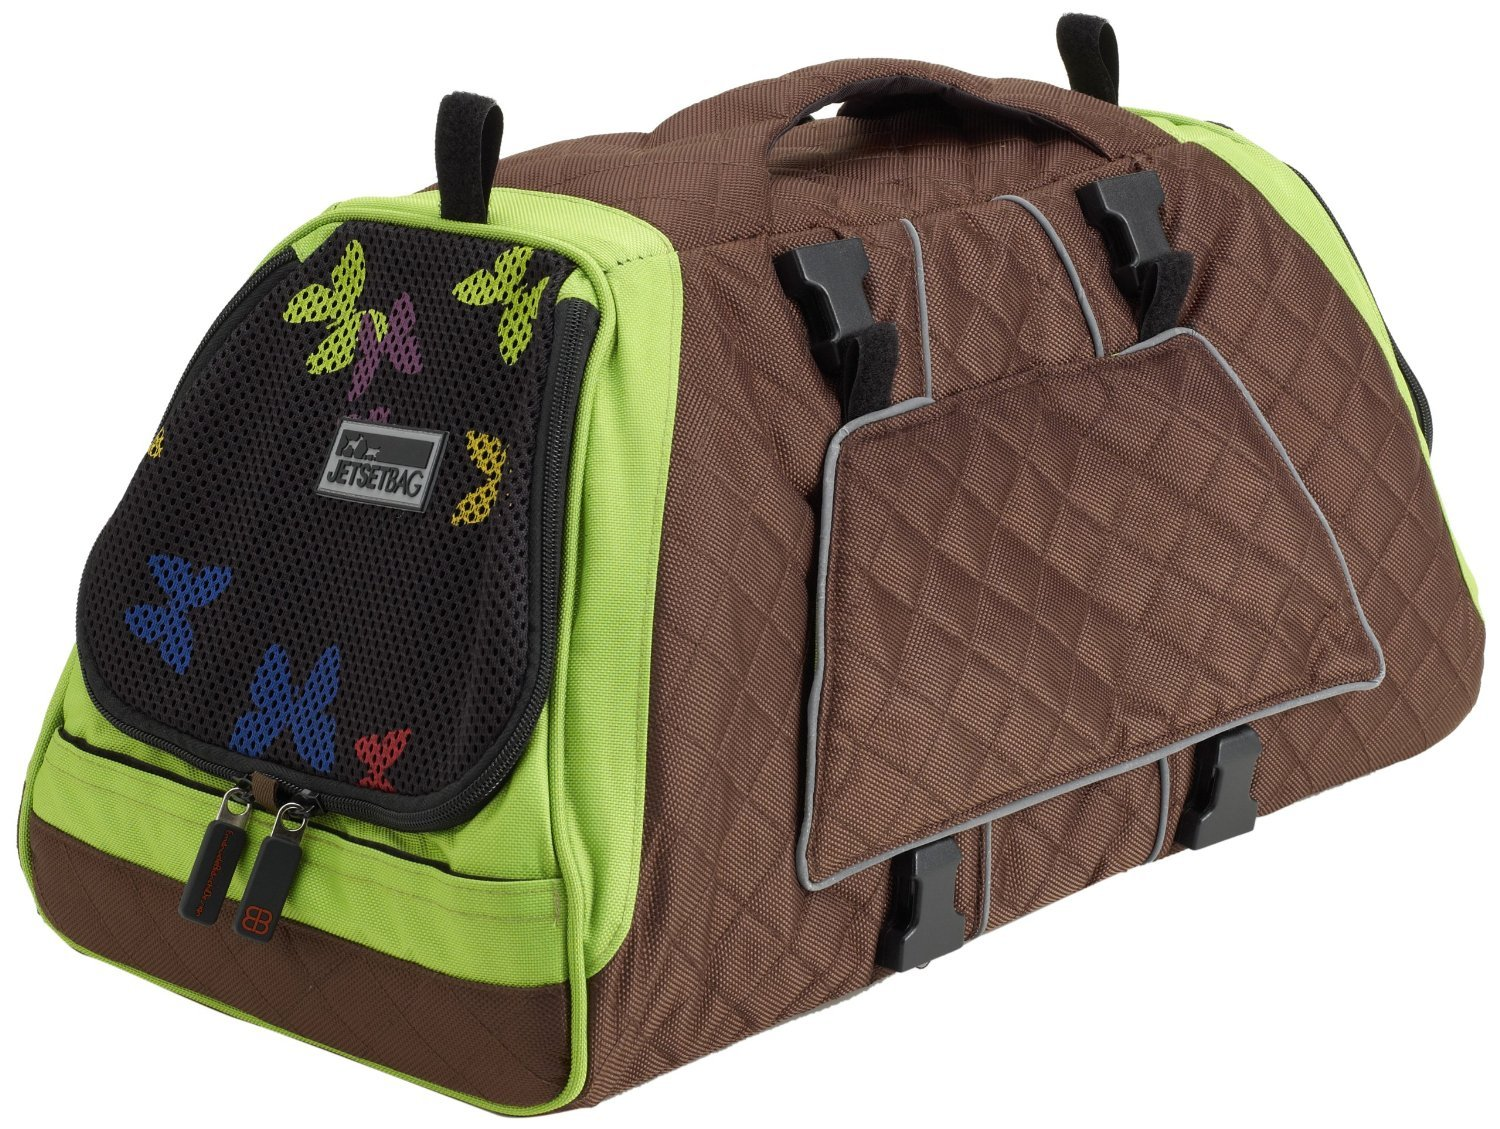 Petego Jet Set Pet Carrier with Forma Frame, Small, Green and Brown